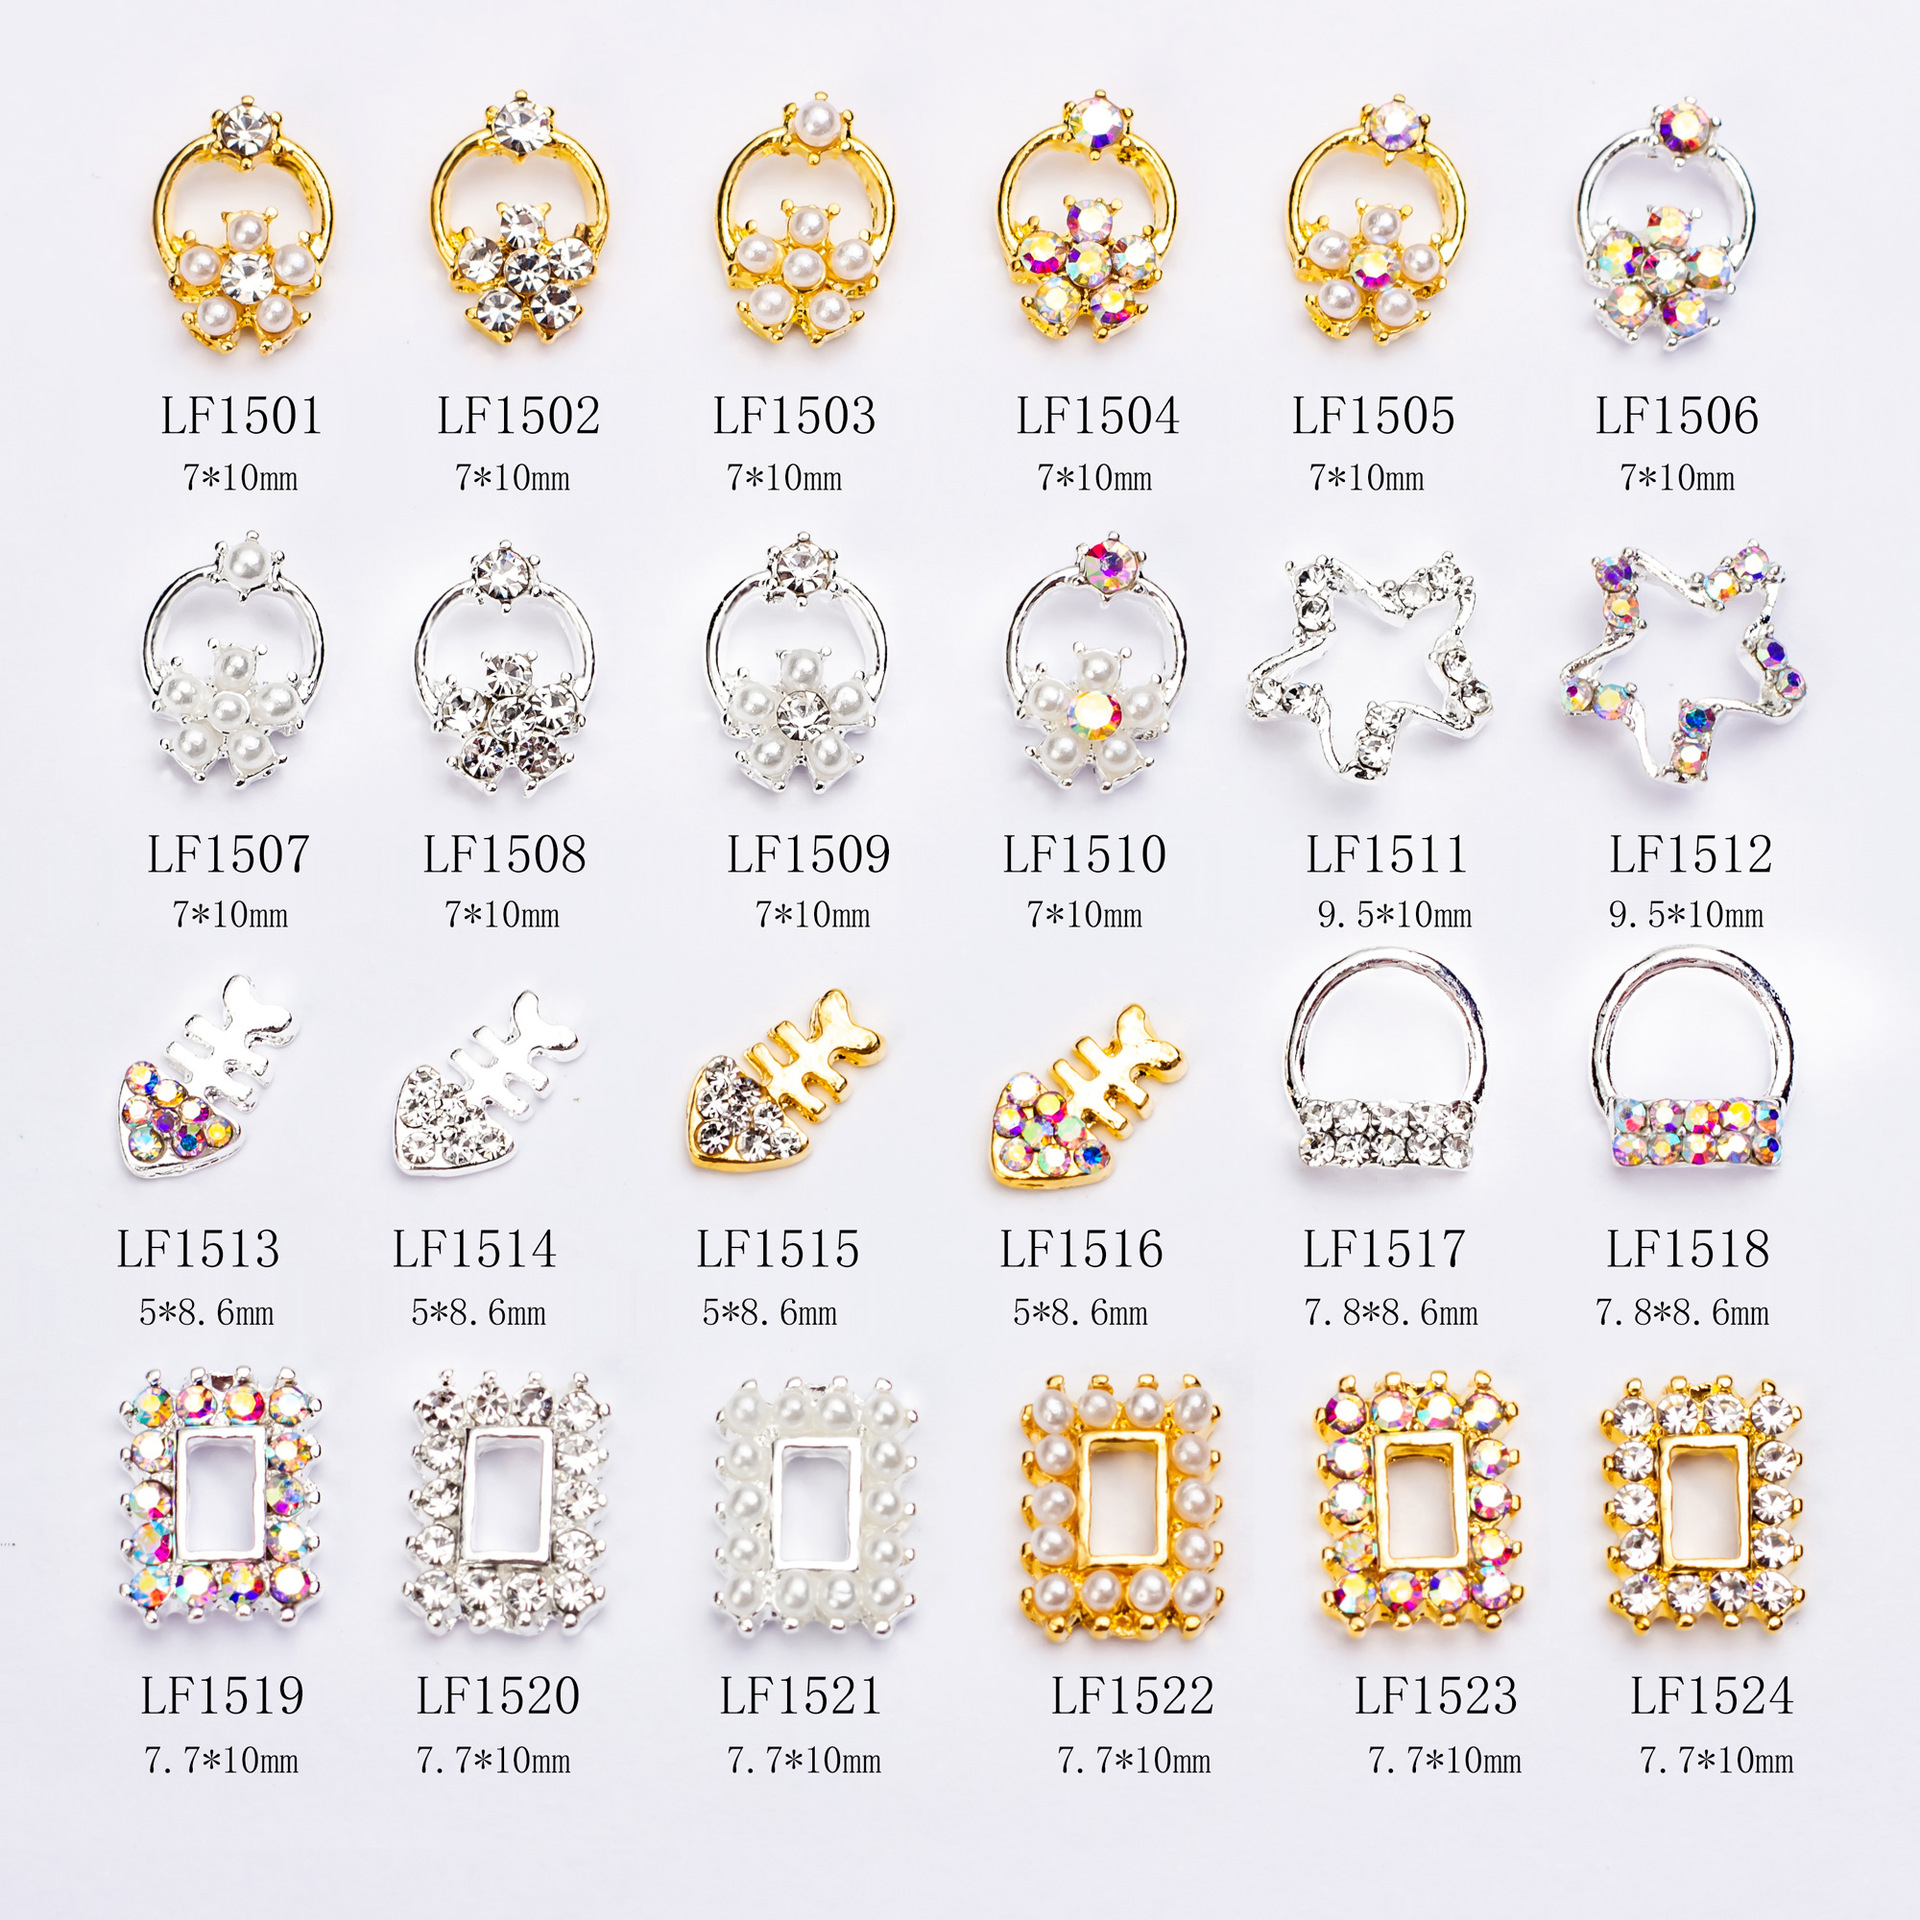 New Style Nail Crystal Accessories Hollow Out Petal Star Fishbone Pearl Geometry Frame Nail Sticker Diamond Alloy Accessory